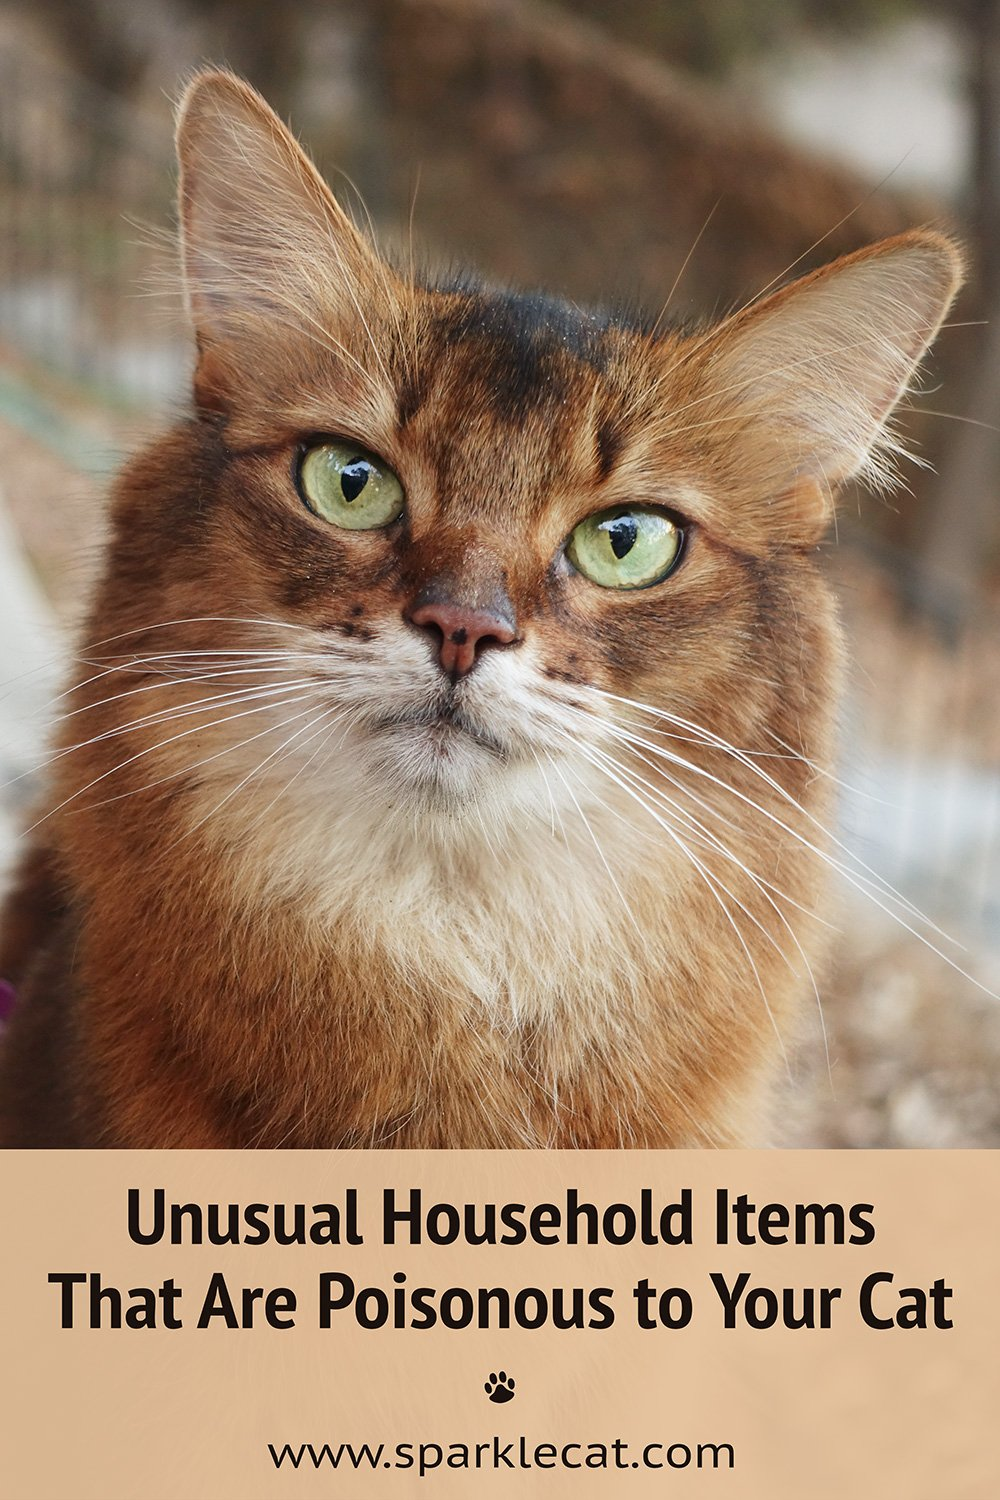 Unusual Household Items that are Poisonous to Your Cat